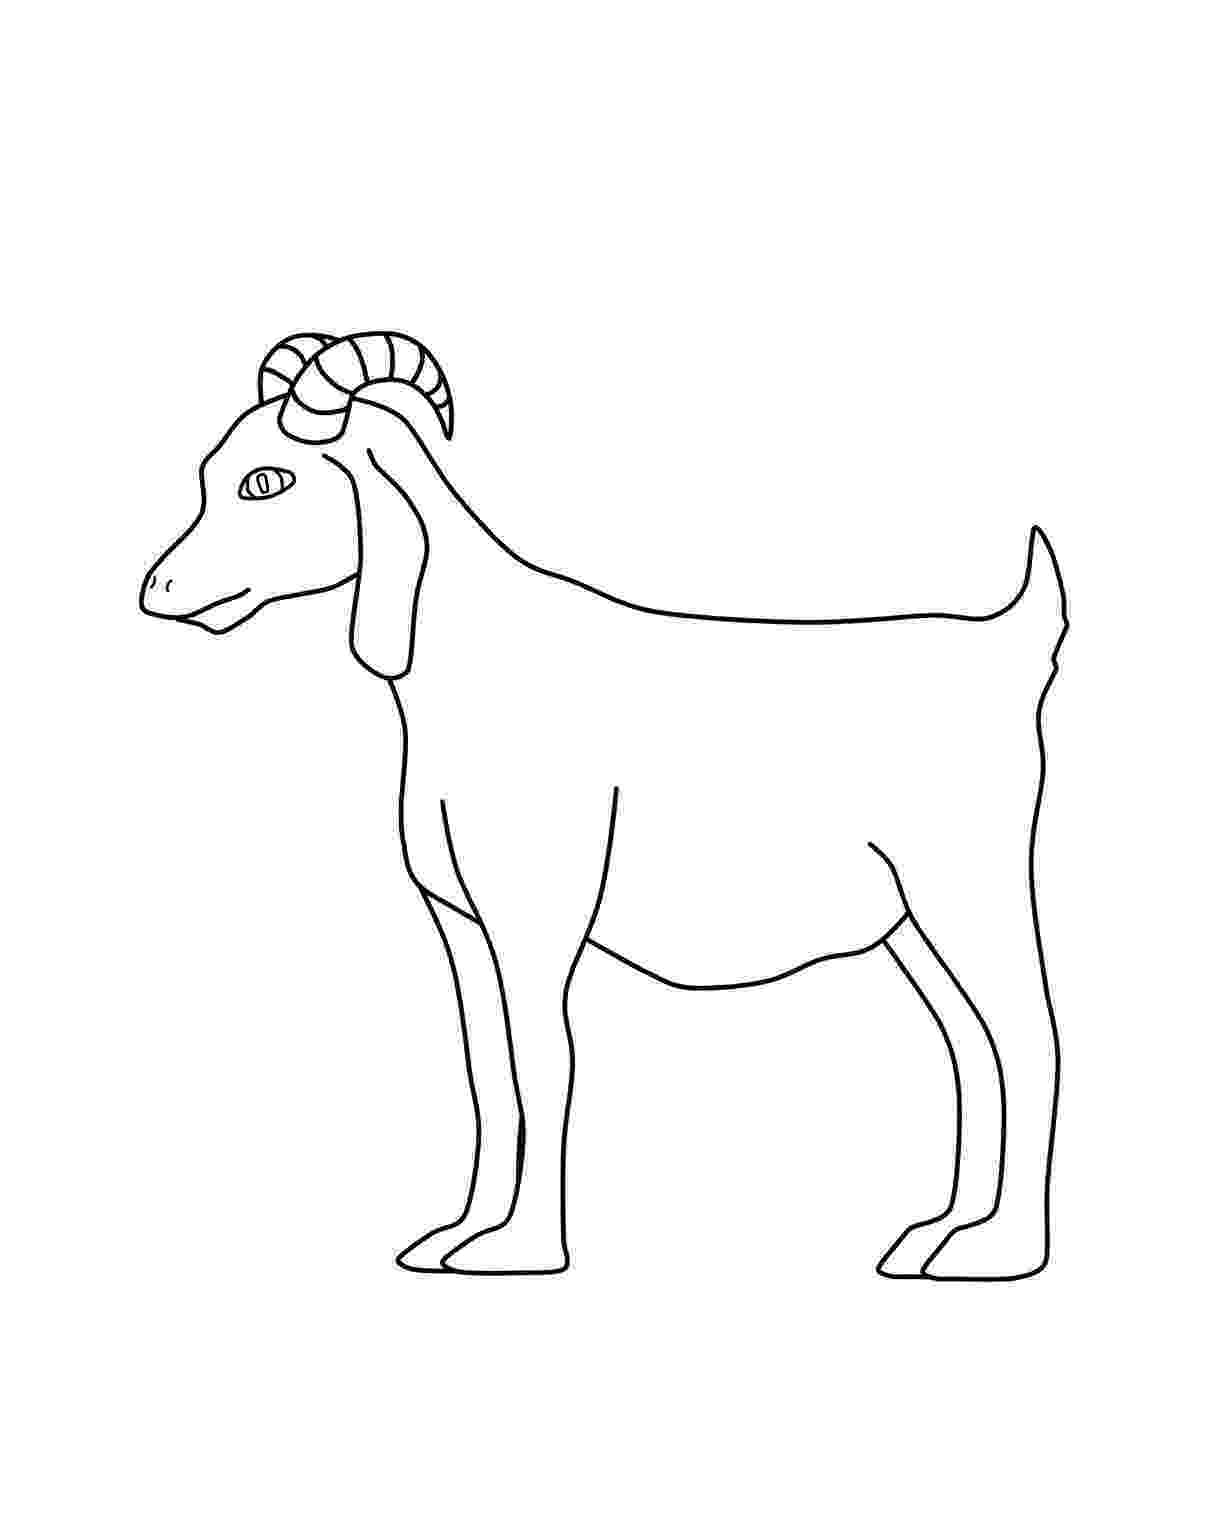 coloring pages of goats goat coloring pages kidsuki pages coloring of goats